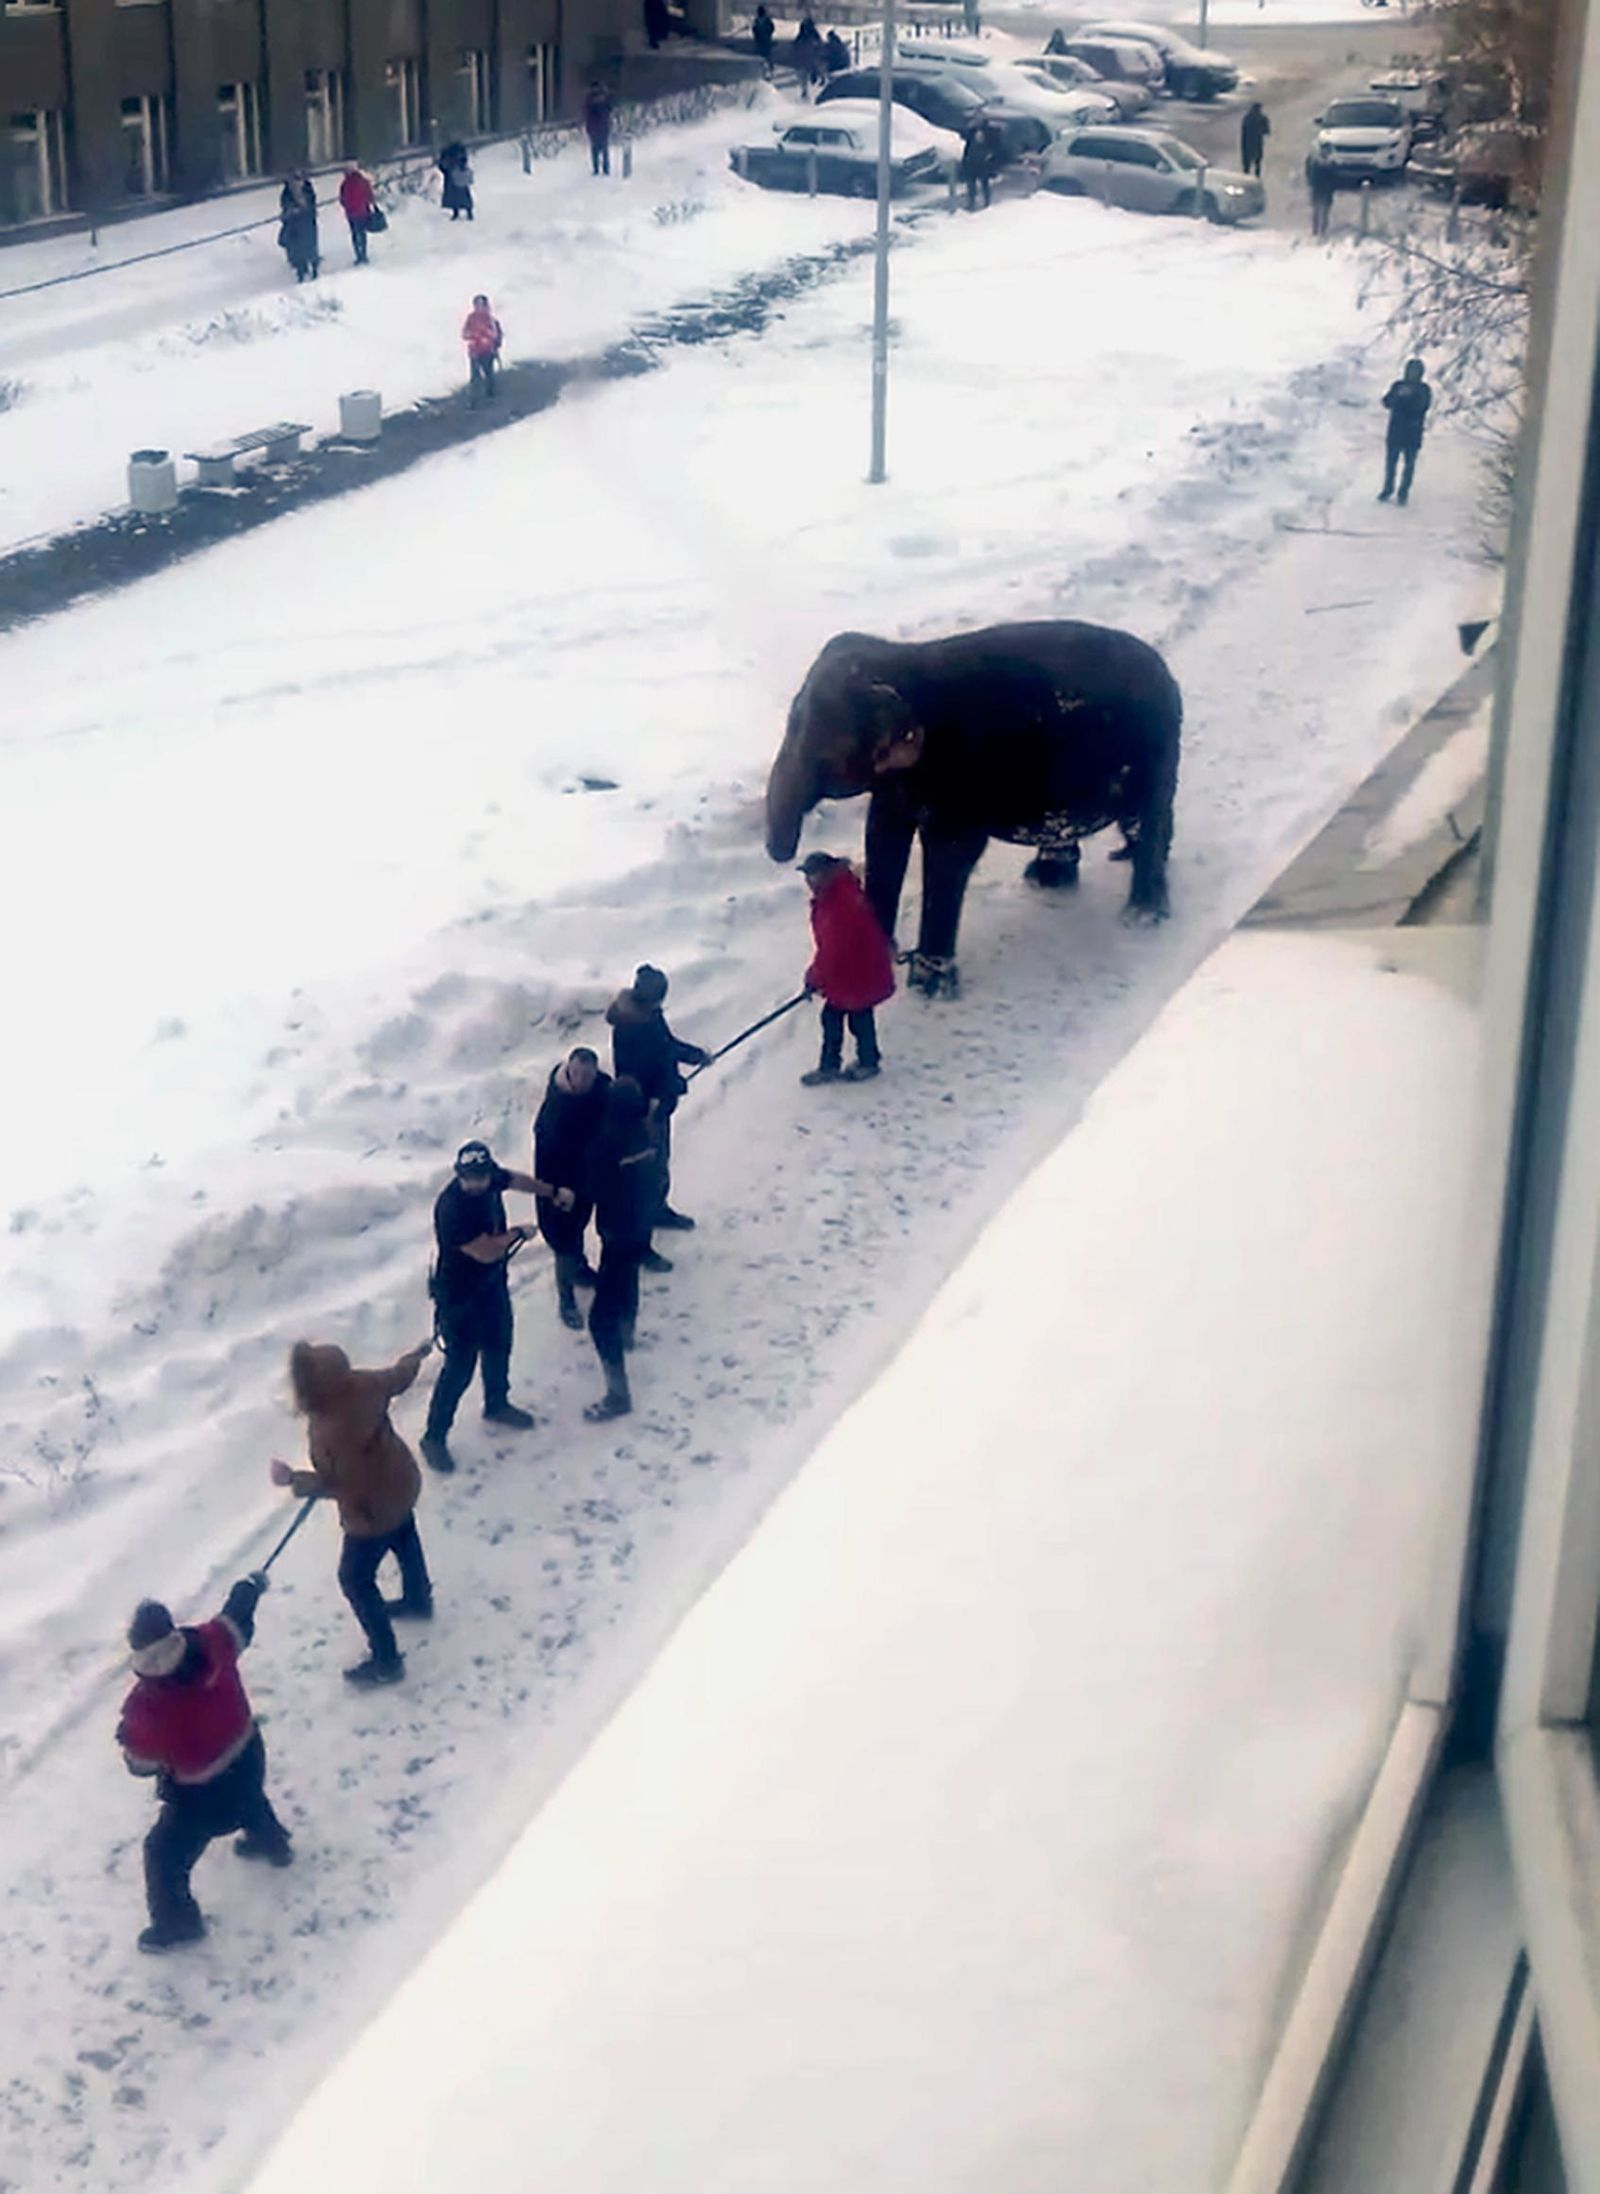 In this handout photo taken from a footage and released by Ksenia Tsybizova, Circus workers pull an elephant in Yekaterinburg, Russia, Friday, Jan. 24, 2020. Two elephants escaped from a local circus while its troupe tried to load then into a truck to head to the next destination.(Ksenia Tsybizova via AP)